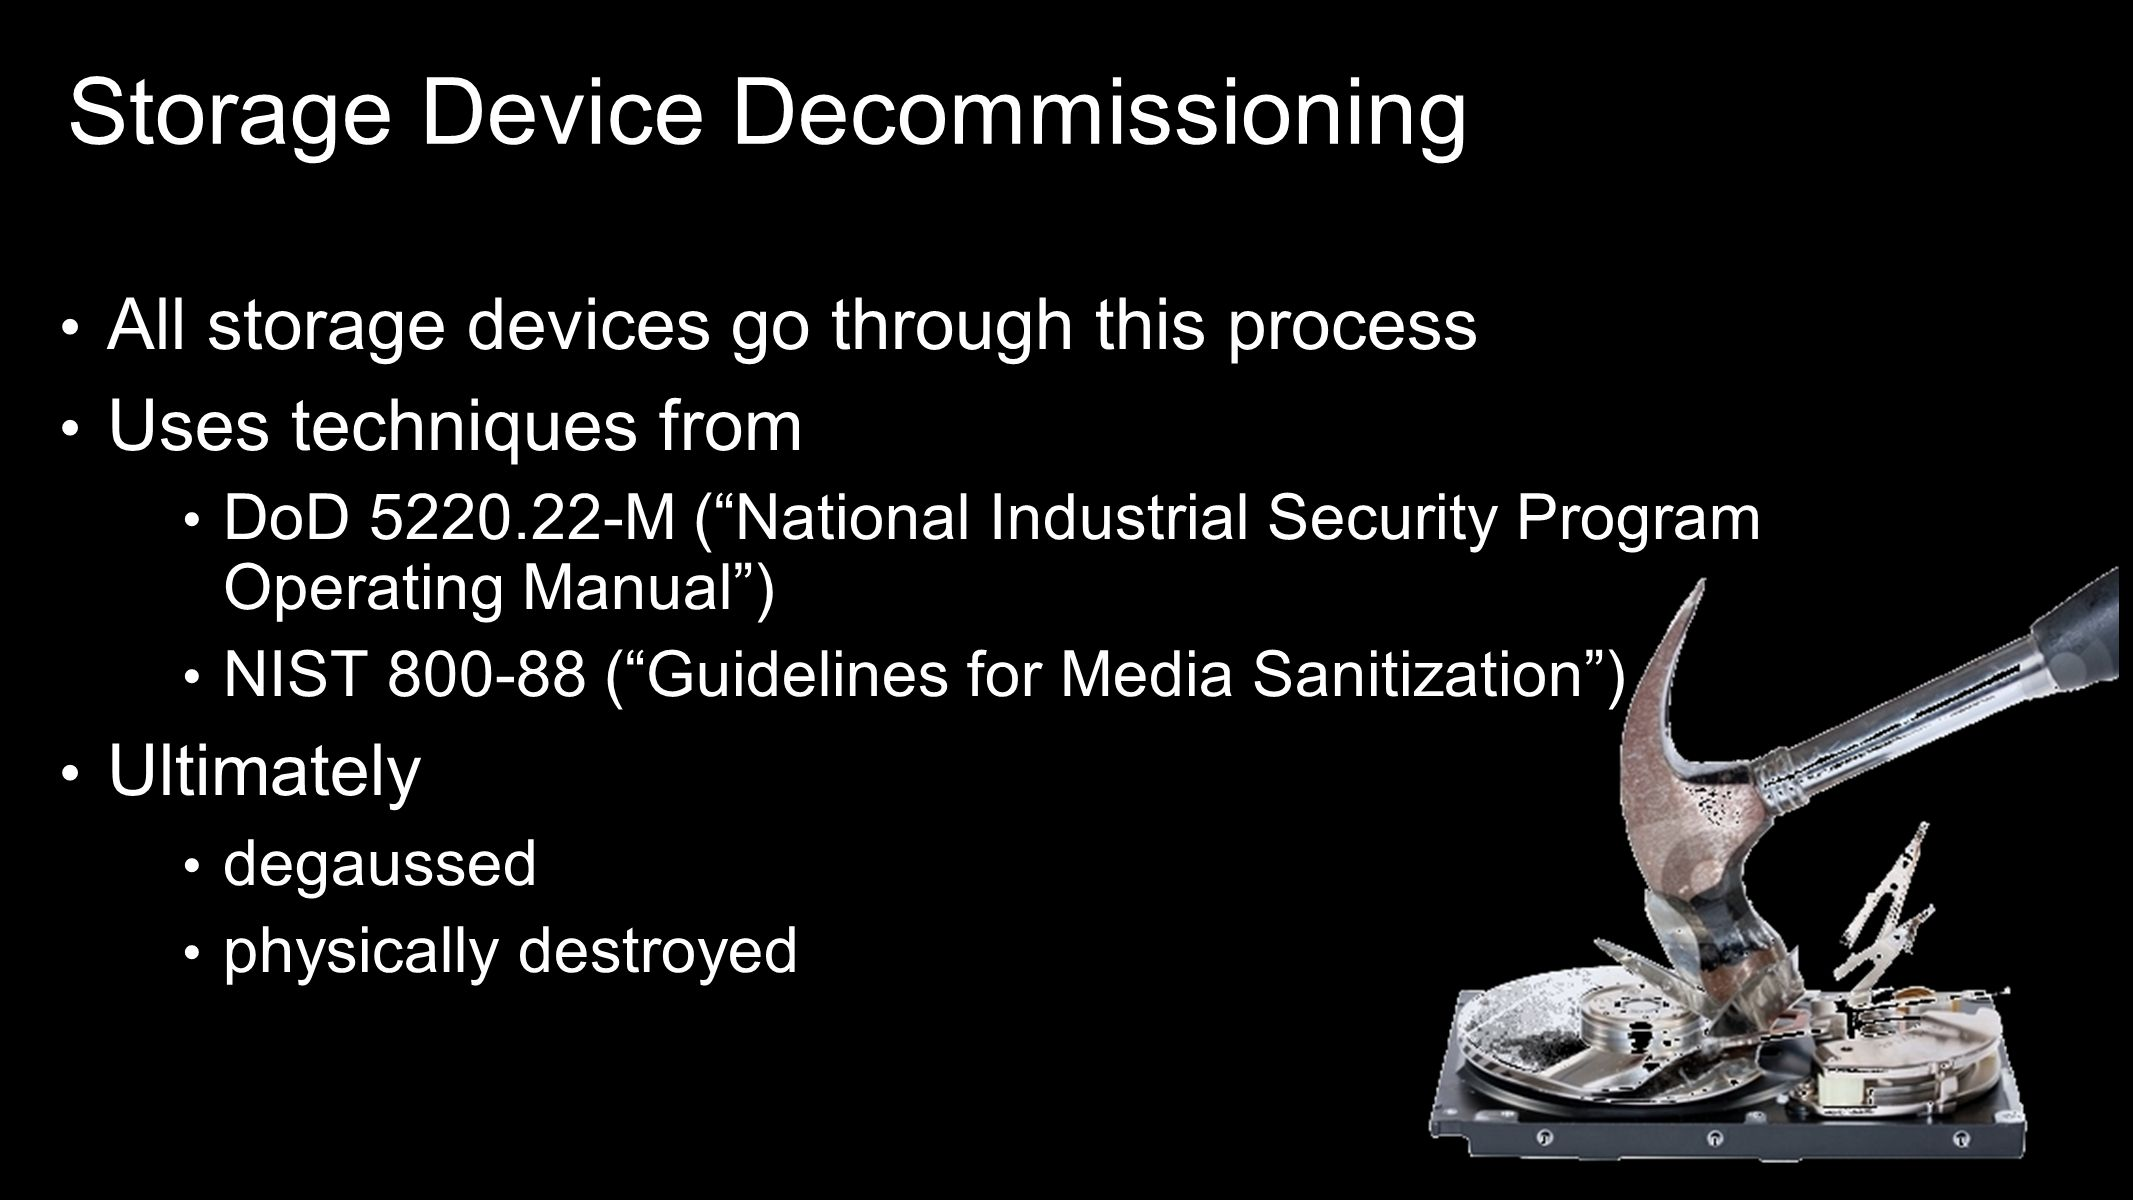 Storage Device Decommissioning